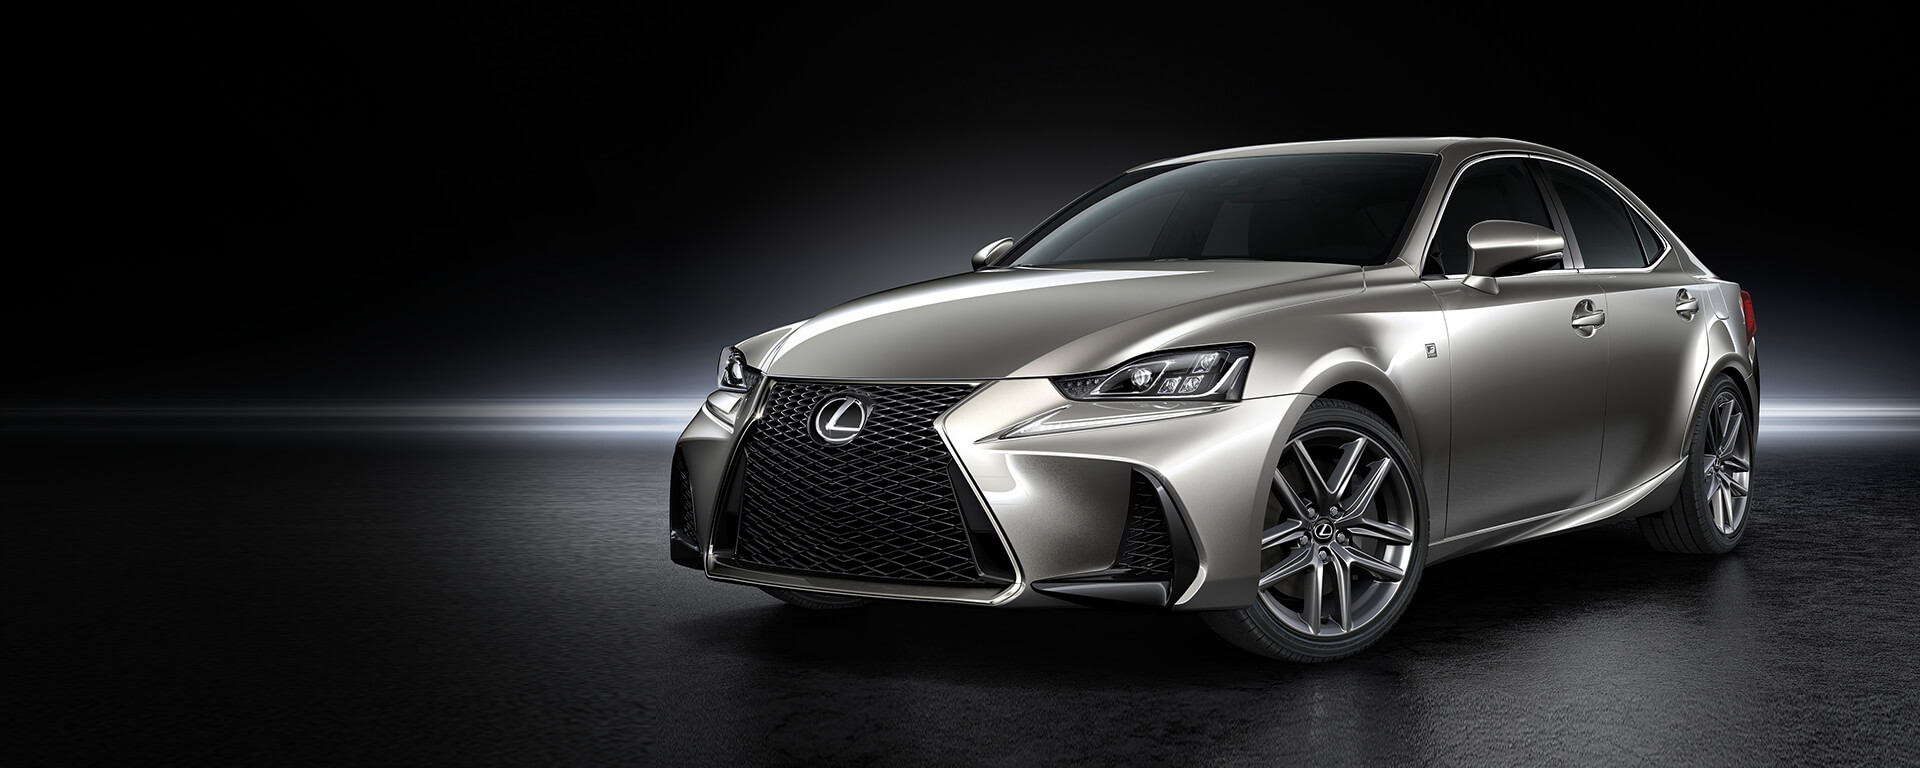 Bobby Rahal Lexus >> Nx Lexus Coming In Spring | Autos Post